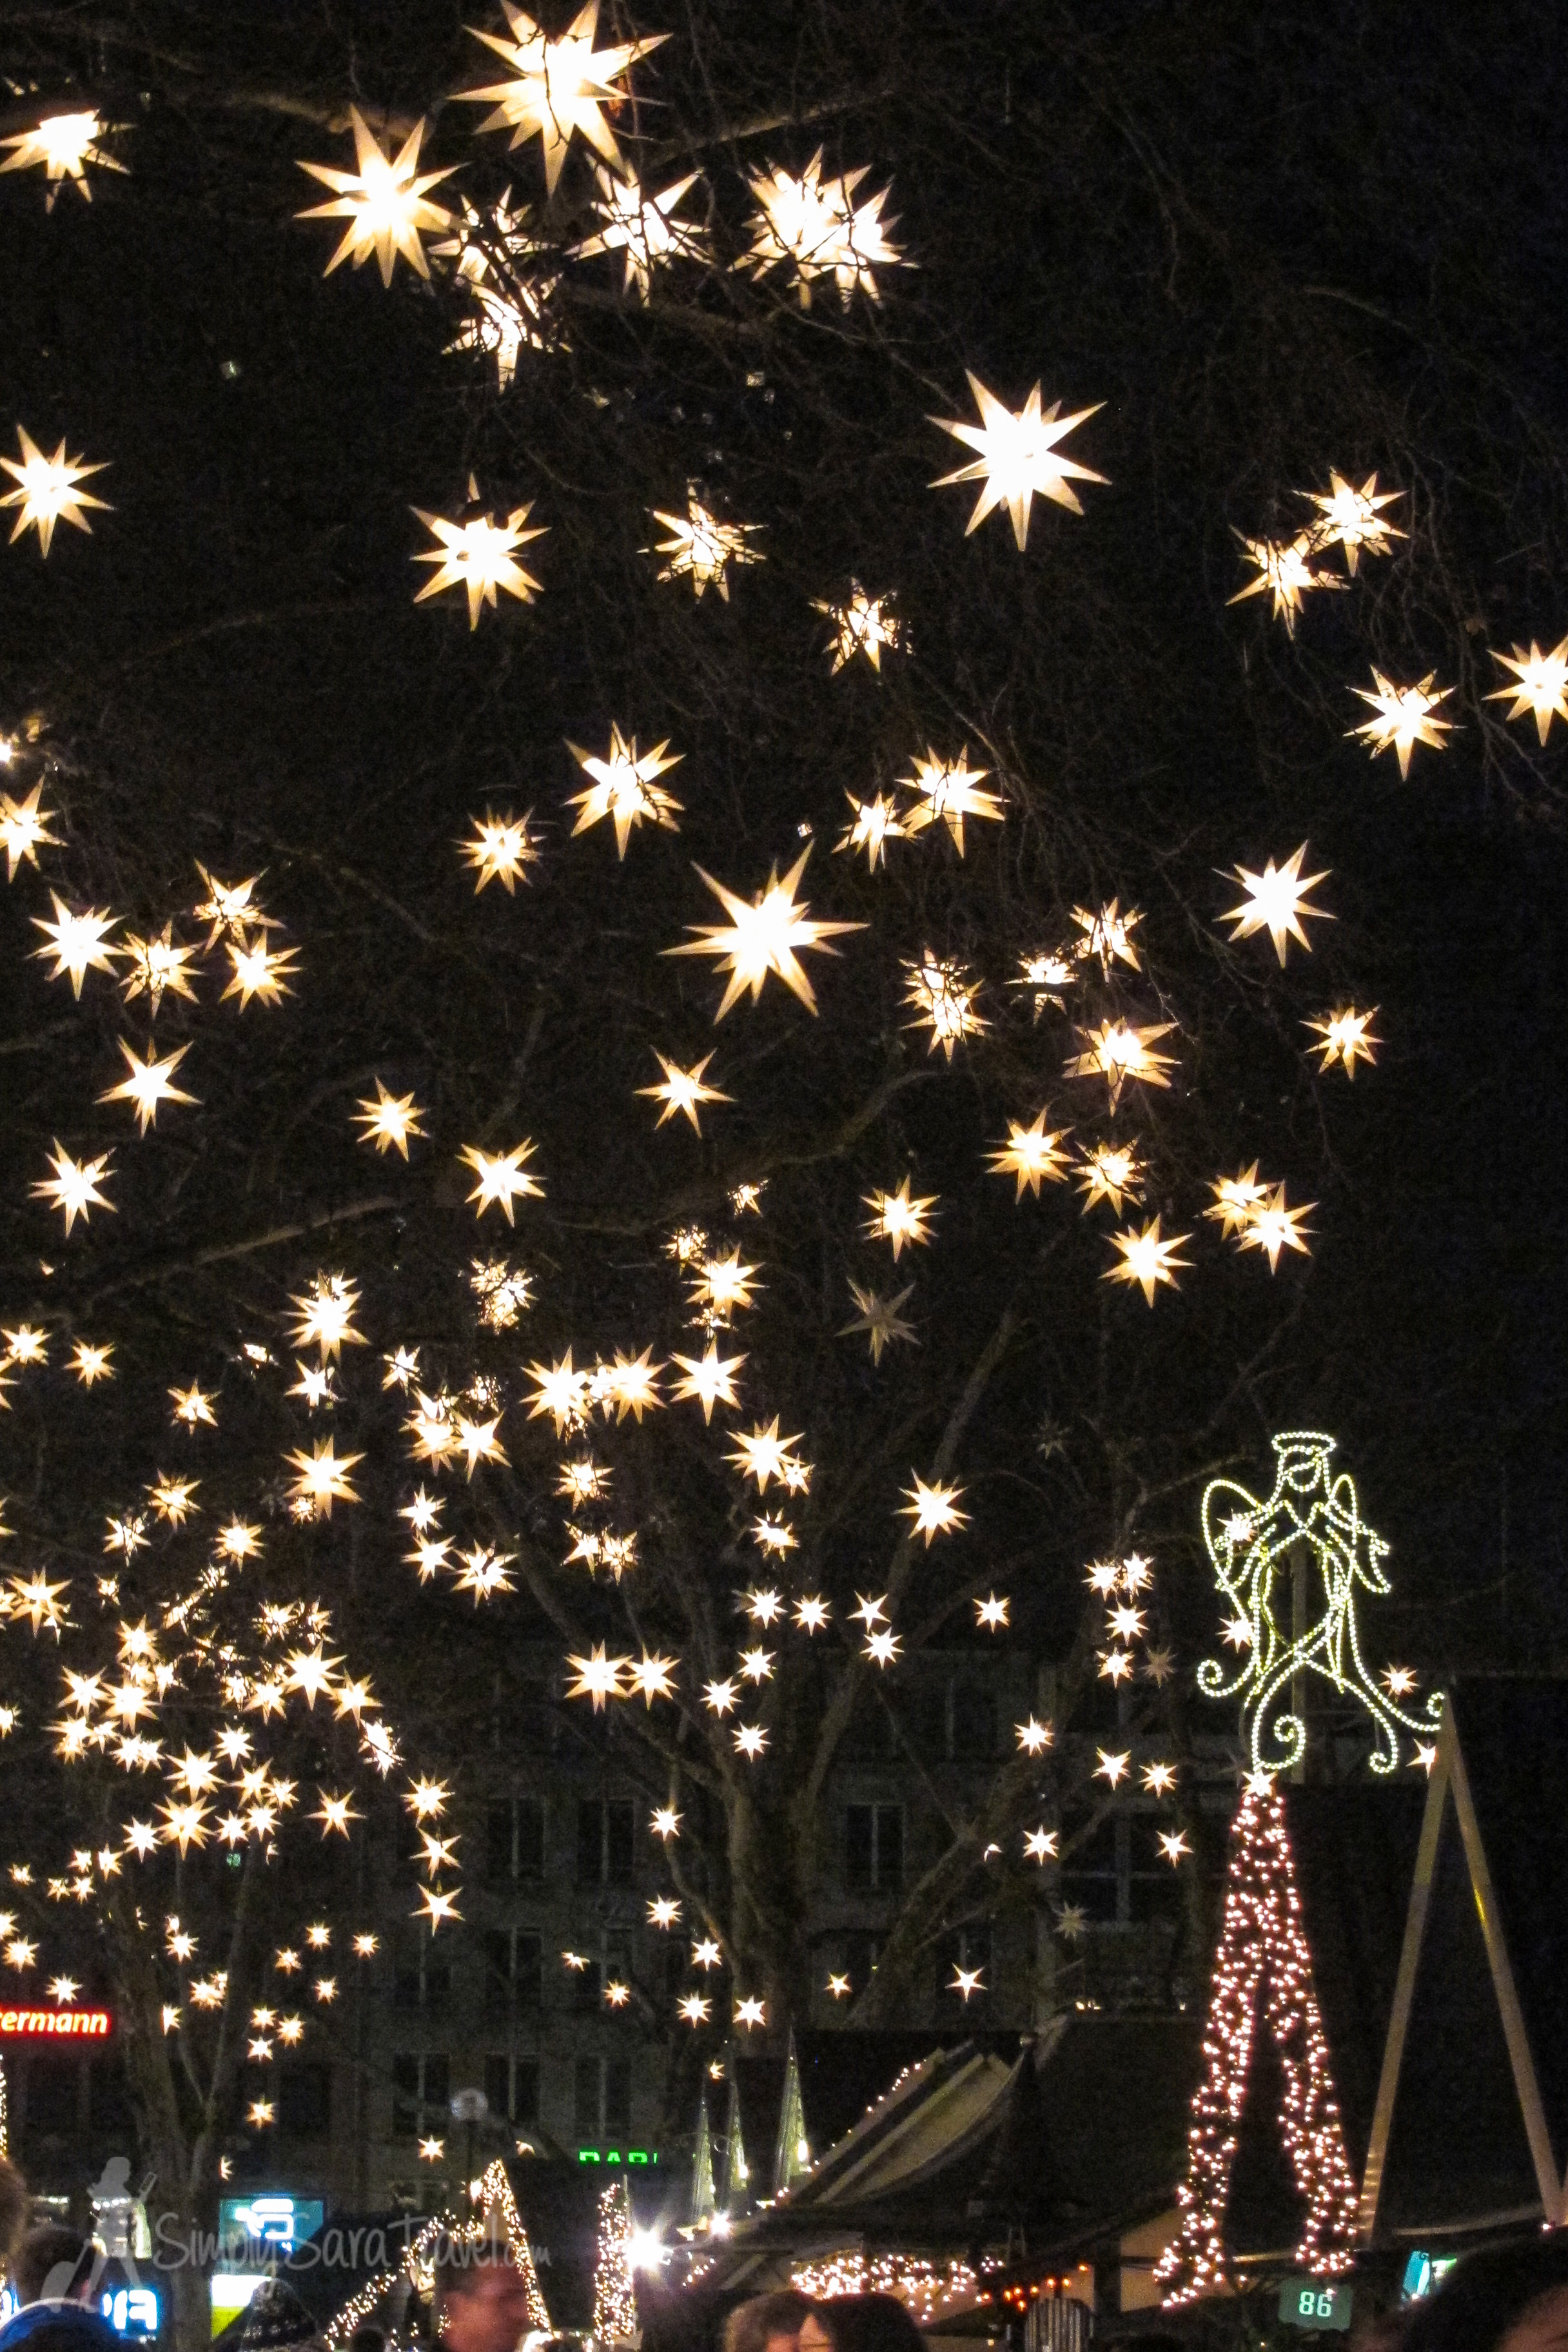 White stars and angels decorate the Markt der Engel in Cologne, Germany